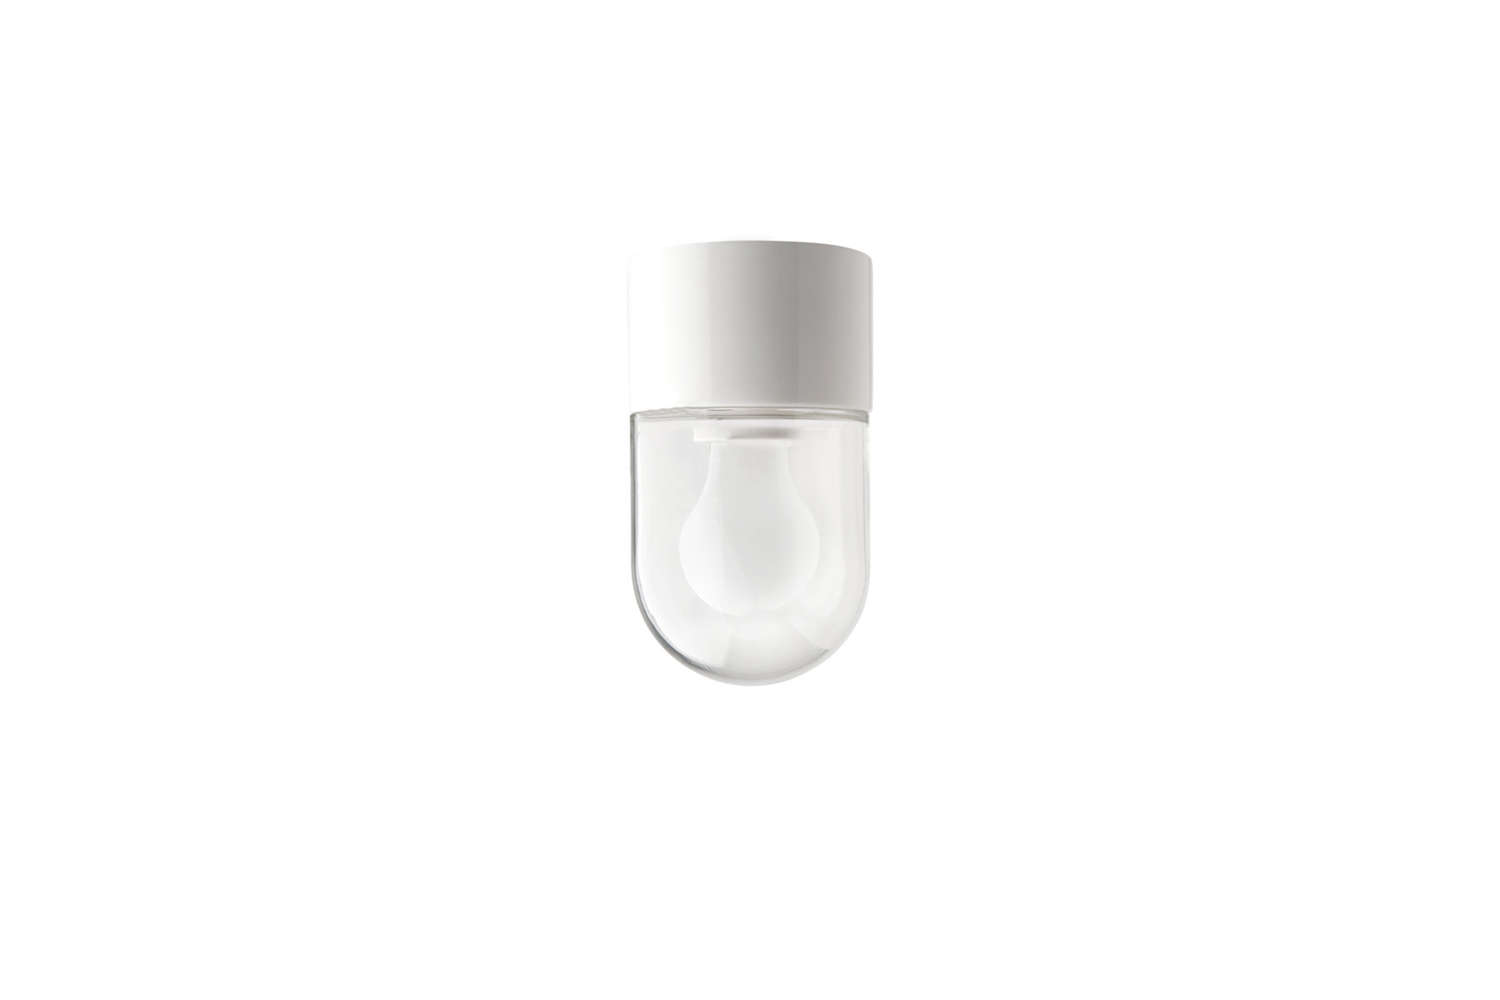 Belgian company Zangra makes a simple White Porcelain Lamp that comes with a frosted, clear, or opal glass shade; €3loading=